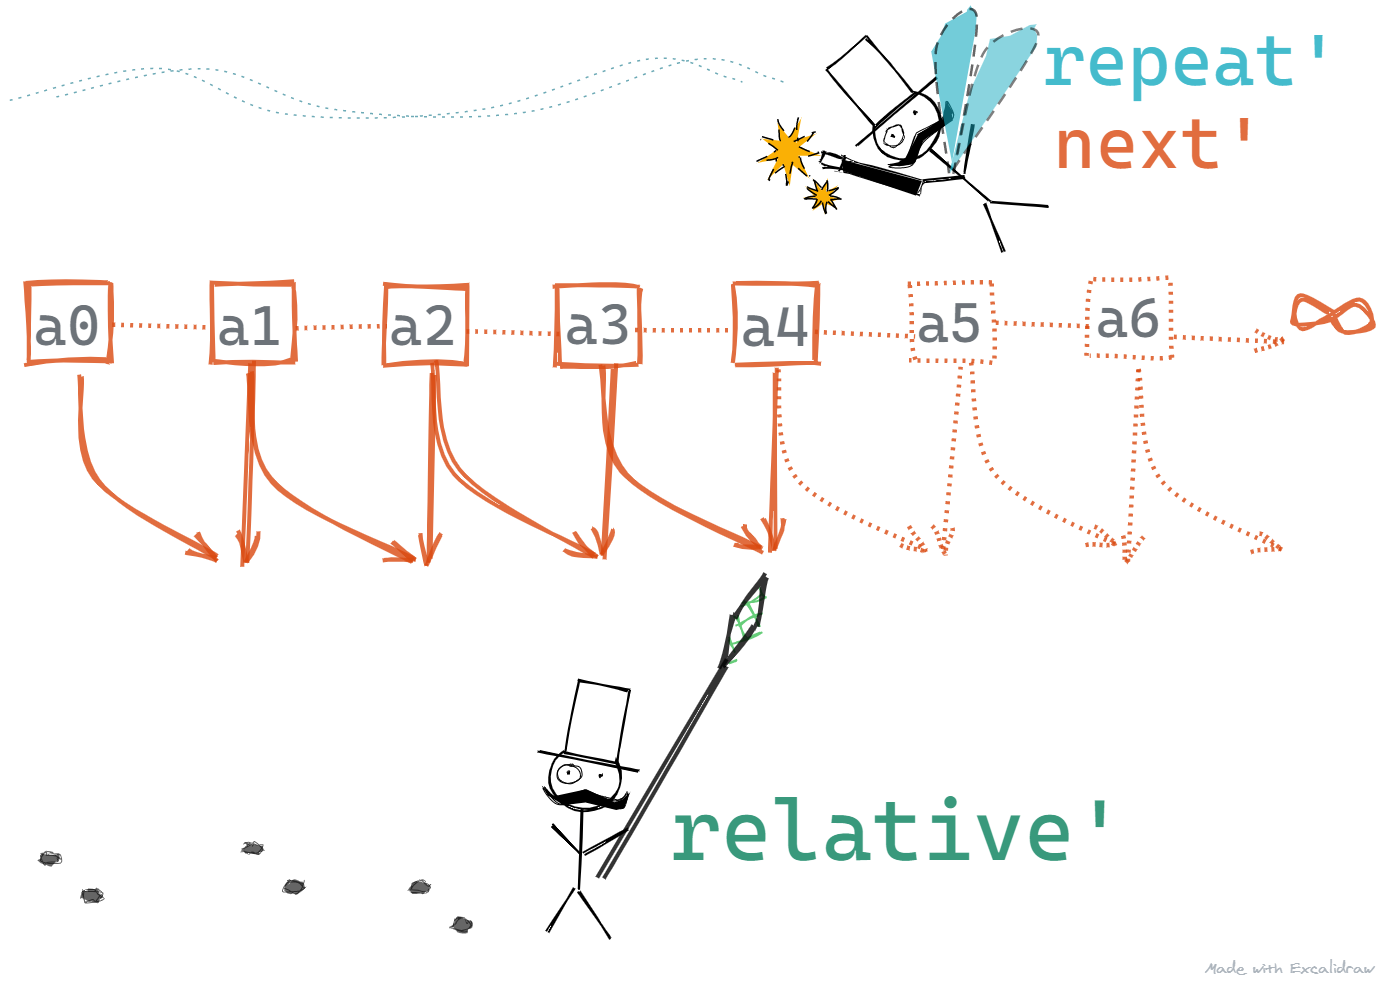 repeat-next-relative